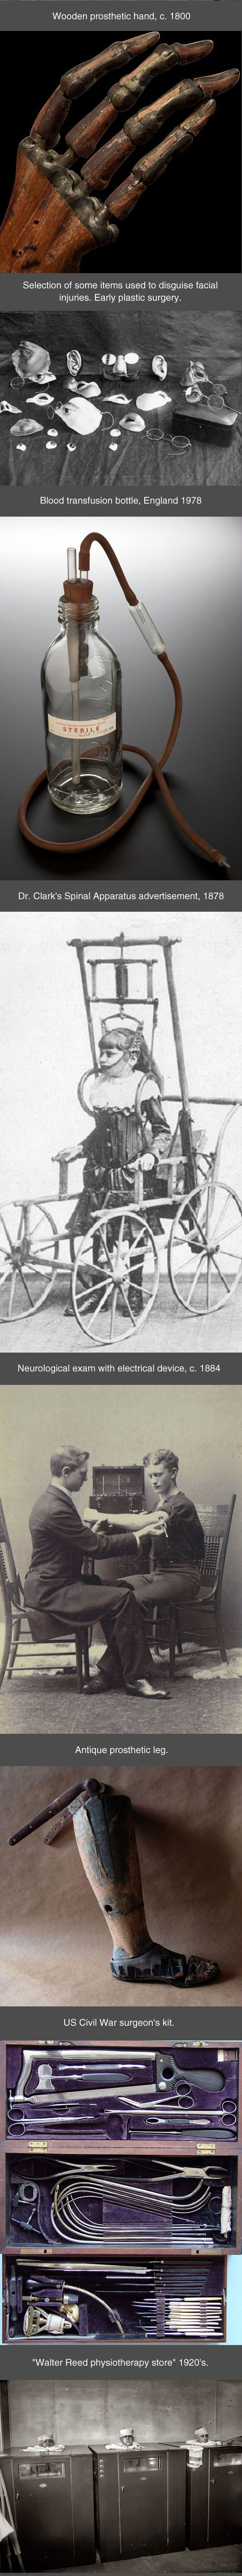 Medical Technology From The Past. See: https://pinterest.com/pin/287386019946064217 & https://pinterest.com/pin/287386019946064215 & https://pinterest.com/pin/287386019948787074 & https://pinterest.com/pin/287386019948281670 & https://pinterest.com/pin/287386019946064224 & https://pinterest.com/pin/287386019945299673